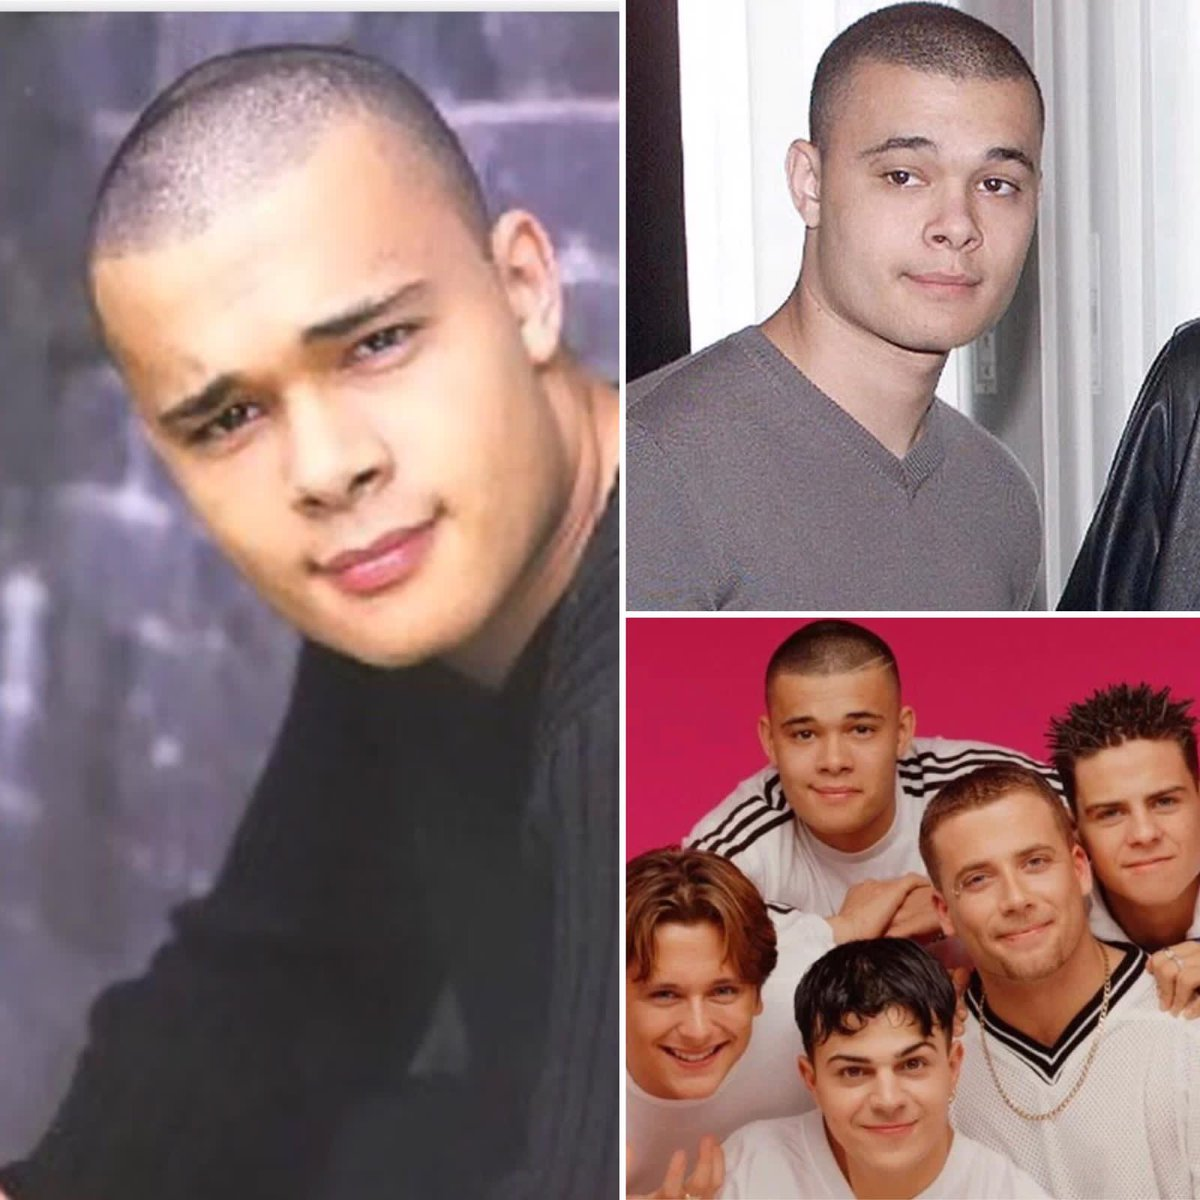 """Today we celebrate the talent of Leeds's own Sean Conlon: multi award winning #singer, #songwriter, #pianist & member of boy band 5ive!  We absolutely loved 5ive back in the day, & defy anyone to remain seated when a 5ive medley rings out! """"Everybody get up!"""" 🎶 🙈 #throwback https://t.co/Gozmyzsiw0"""